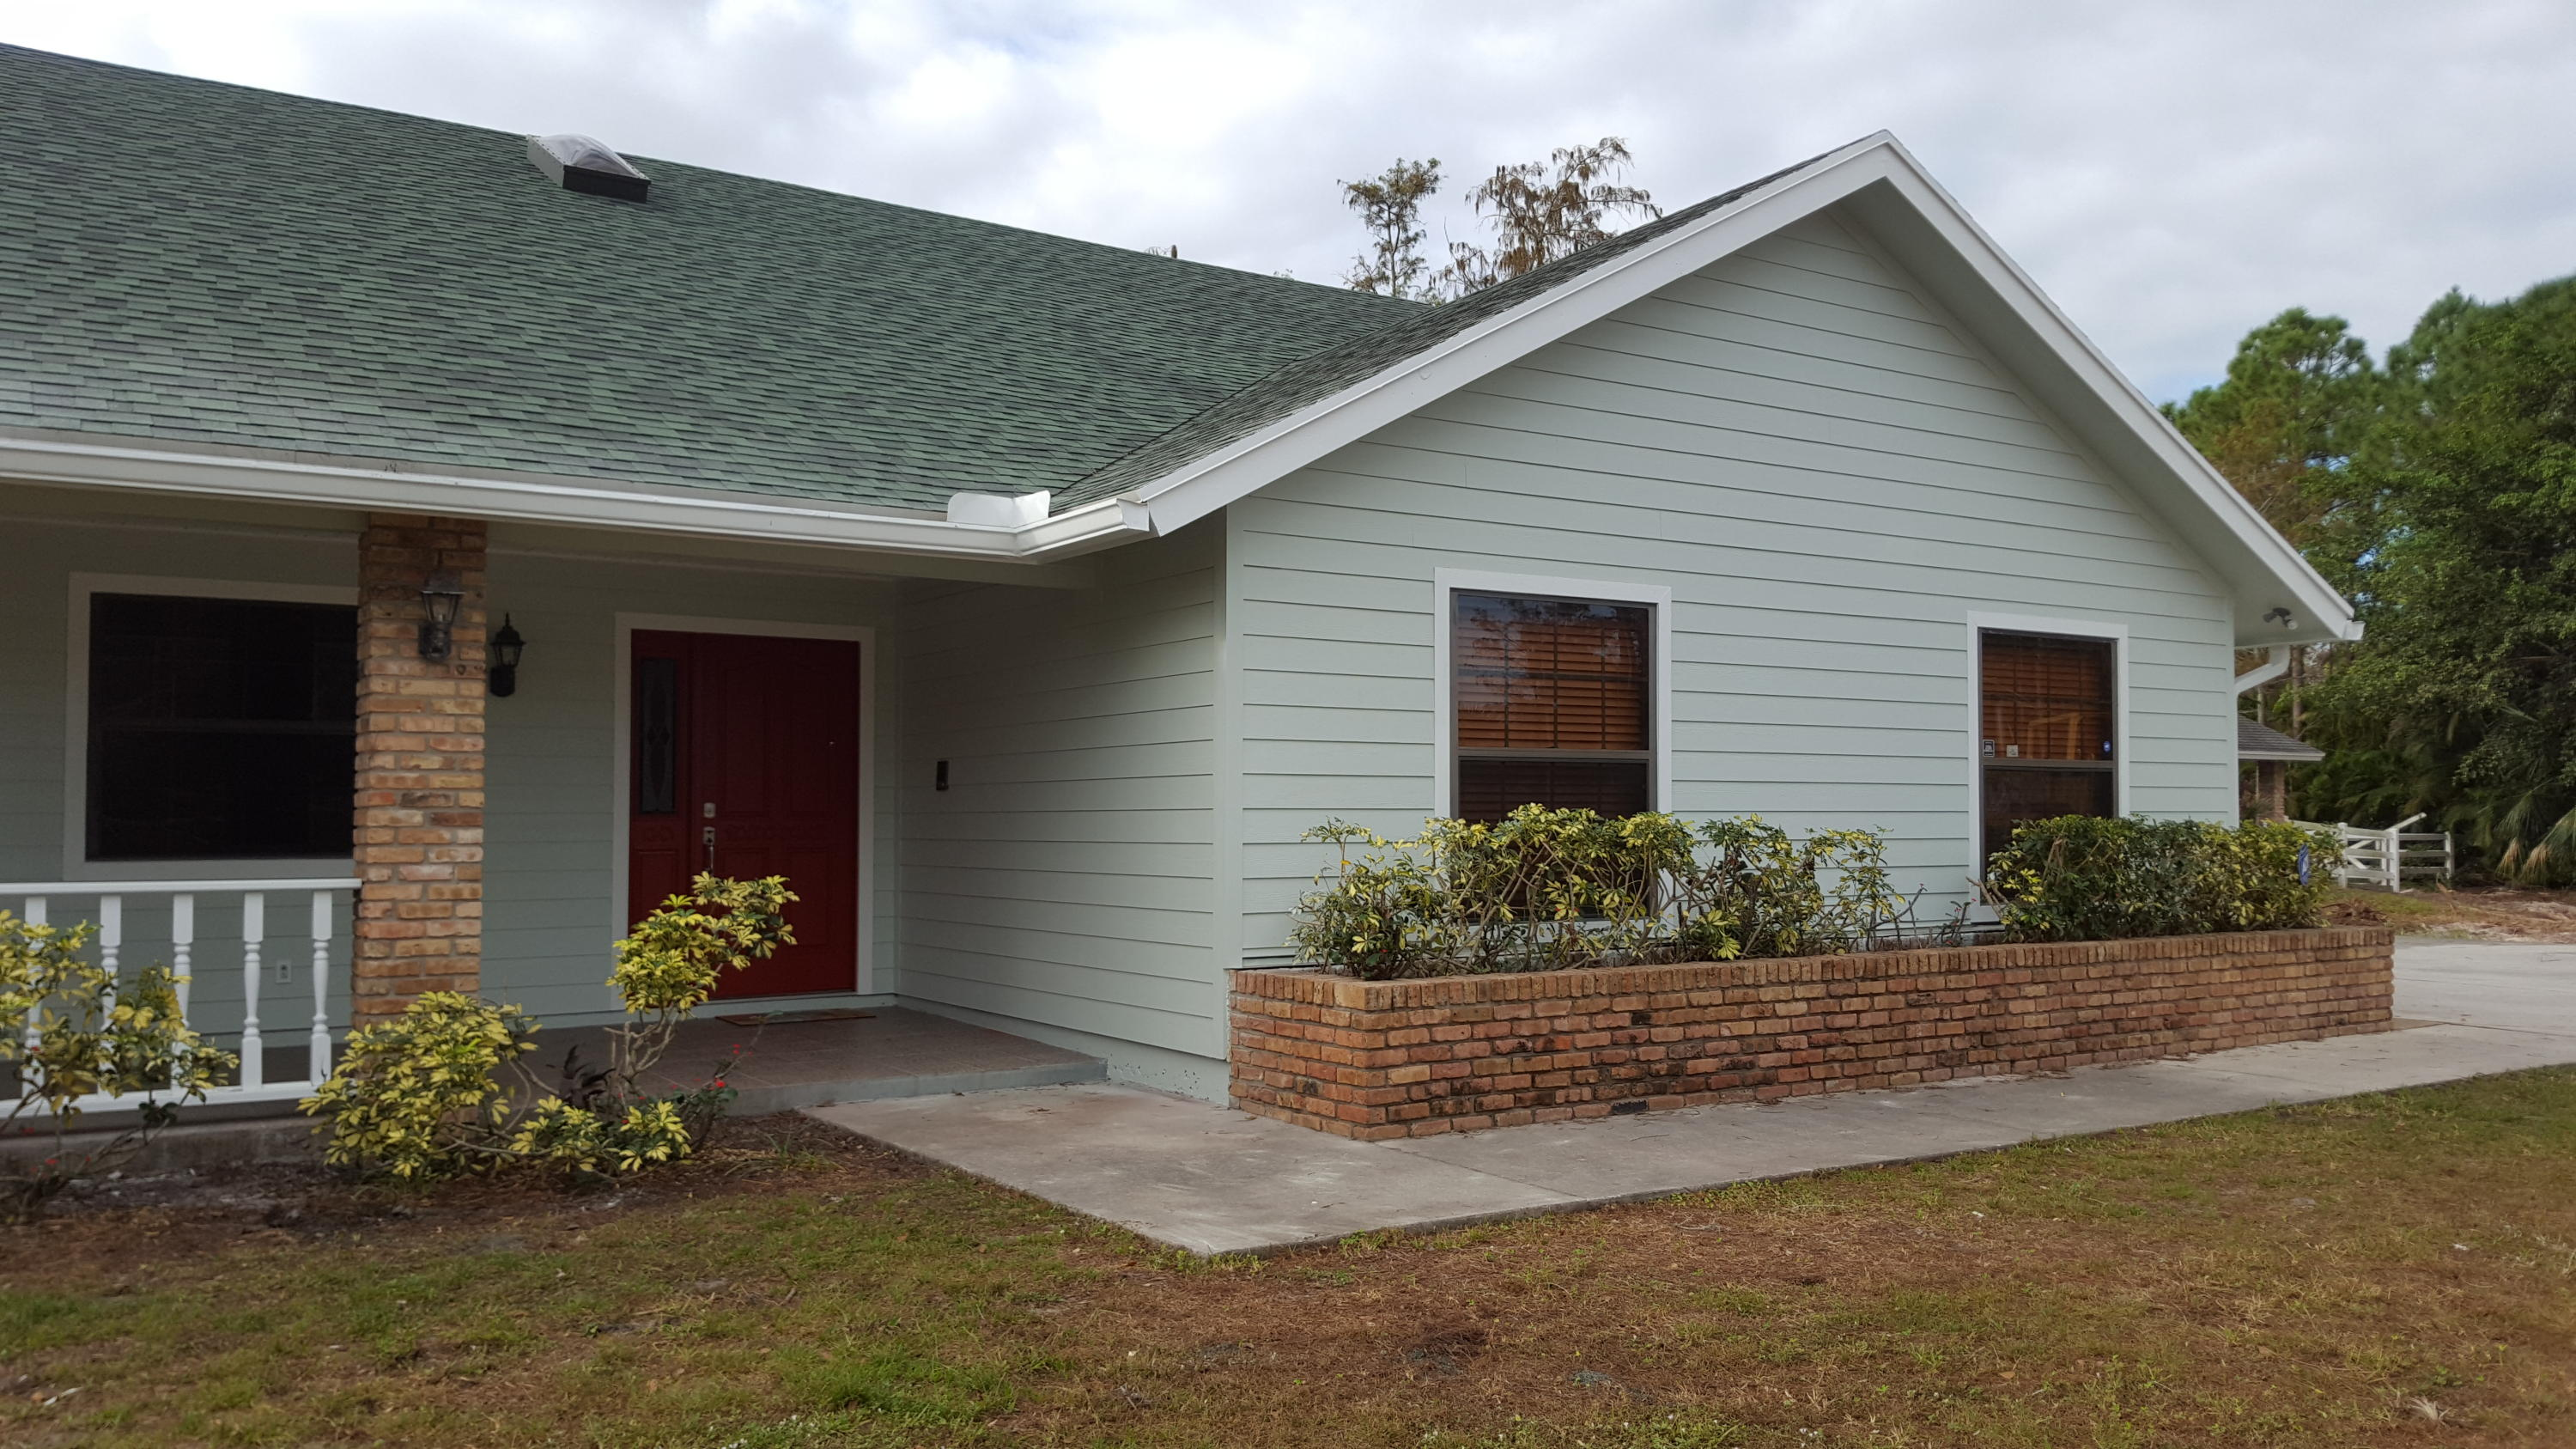 1401 Pelham Road, Wellington, Florida 33414, ,Barn,For Rent,Pelham,1,RX-10486831